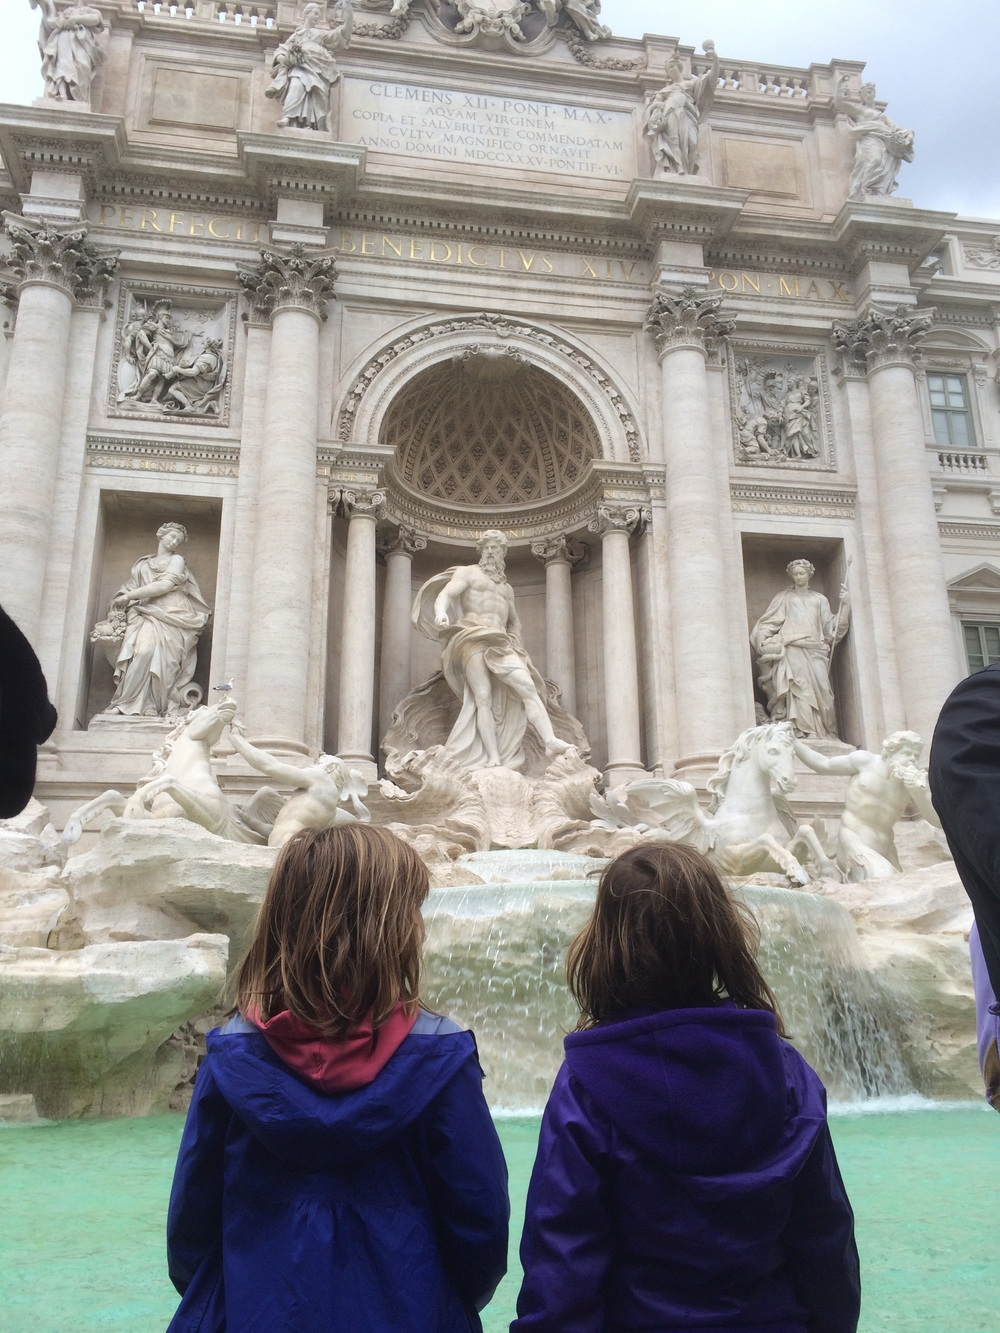 Checking out the Trevi Fountain